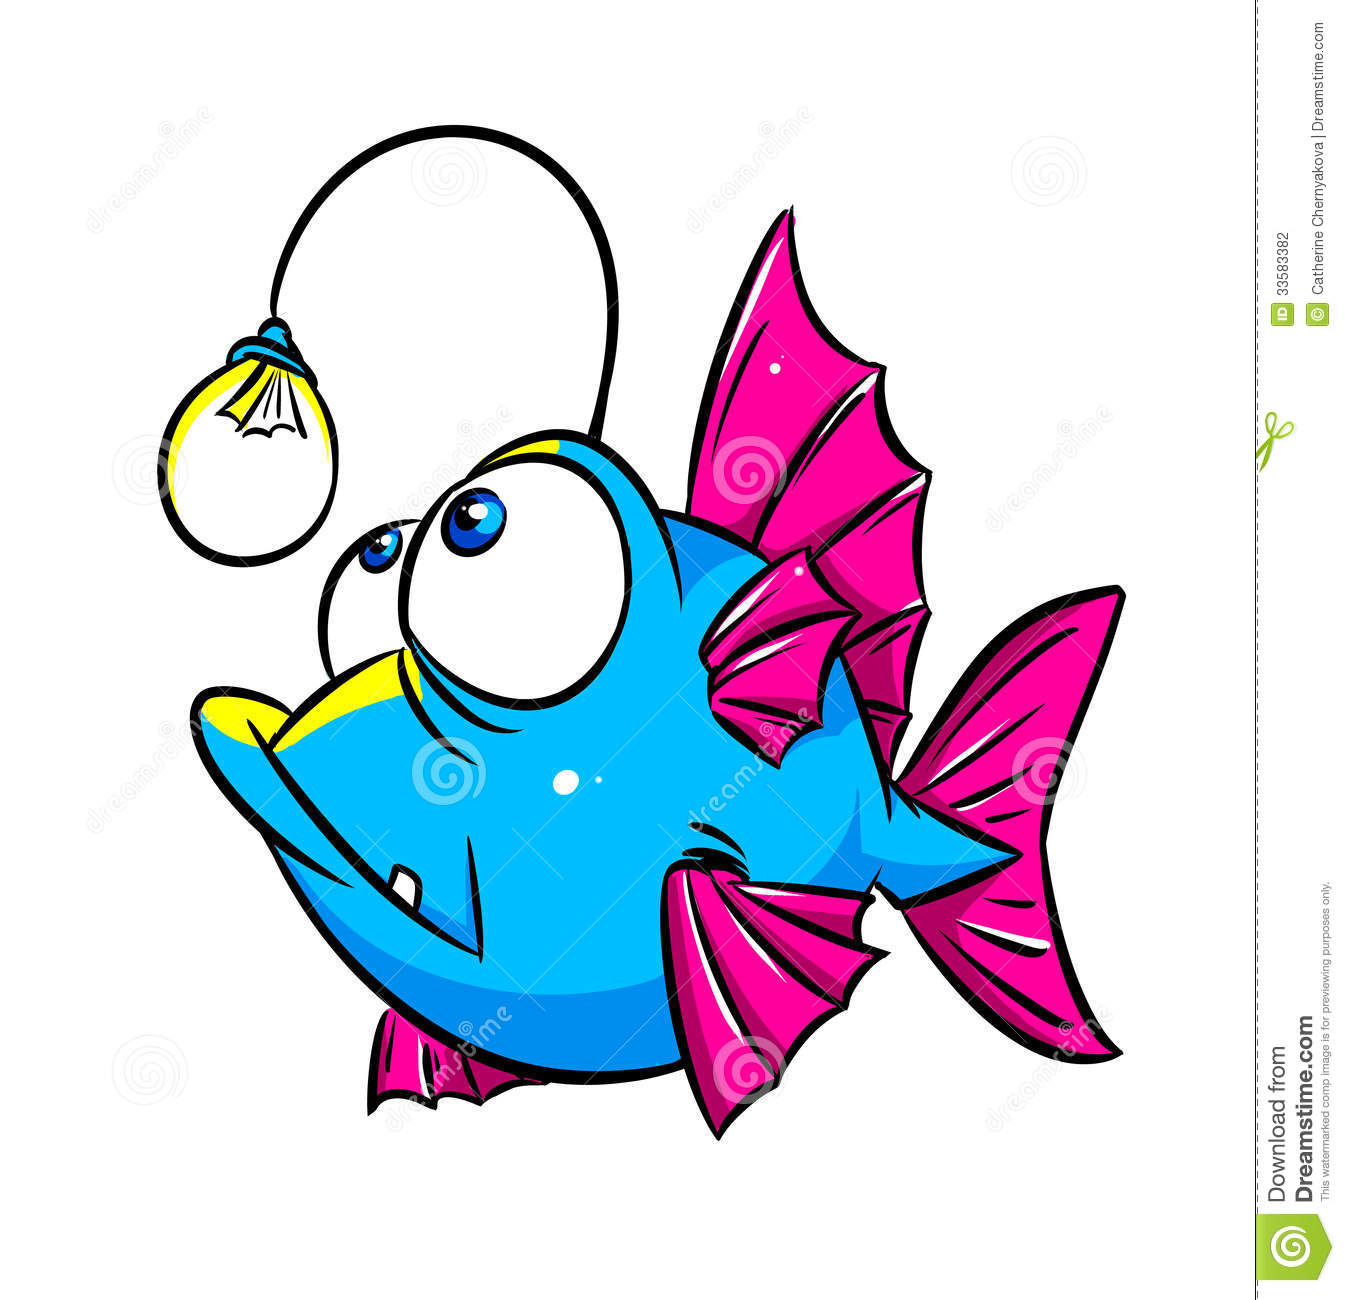 Unusual clipart #10, Download drawings